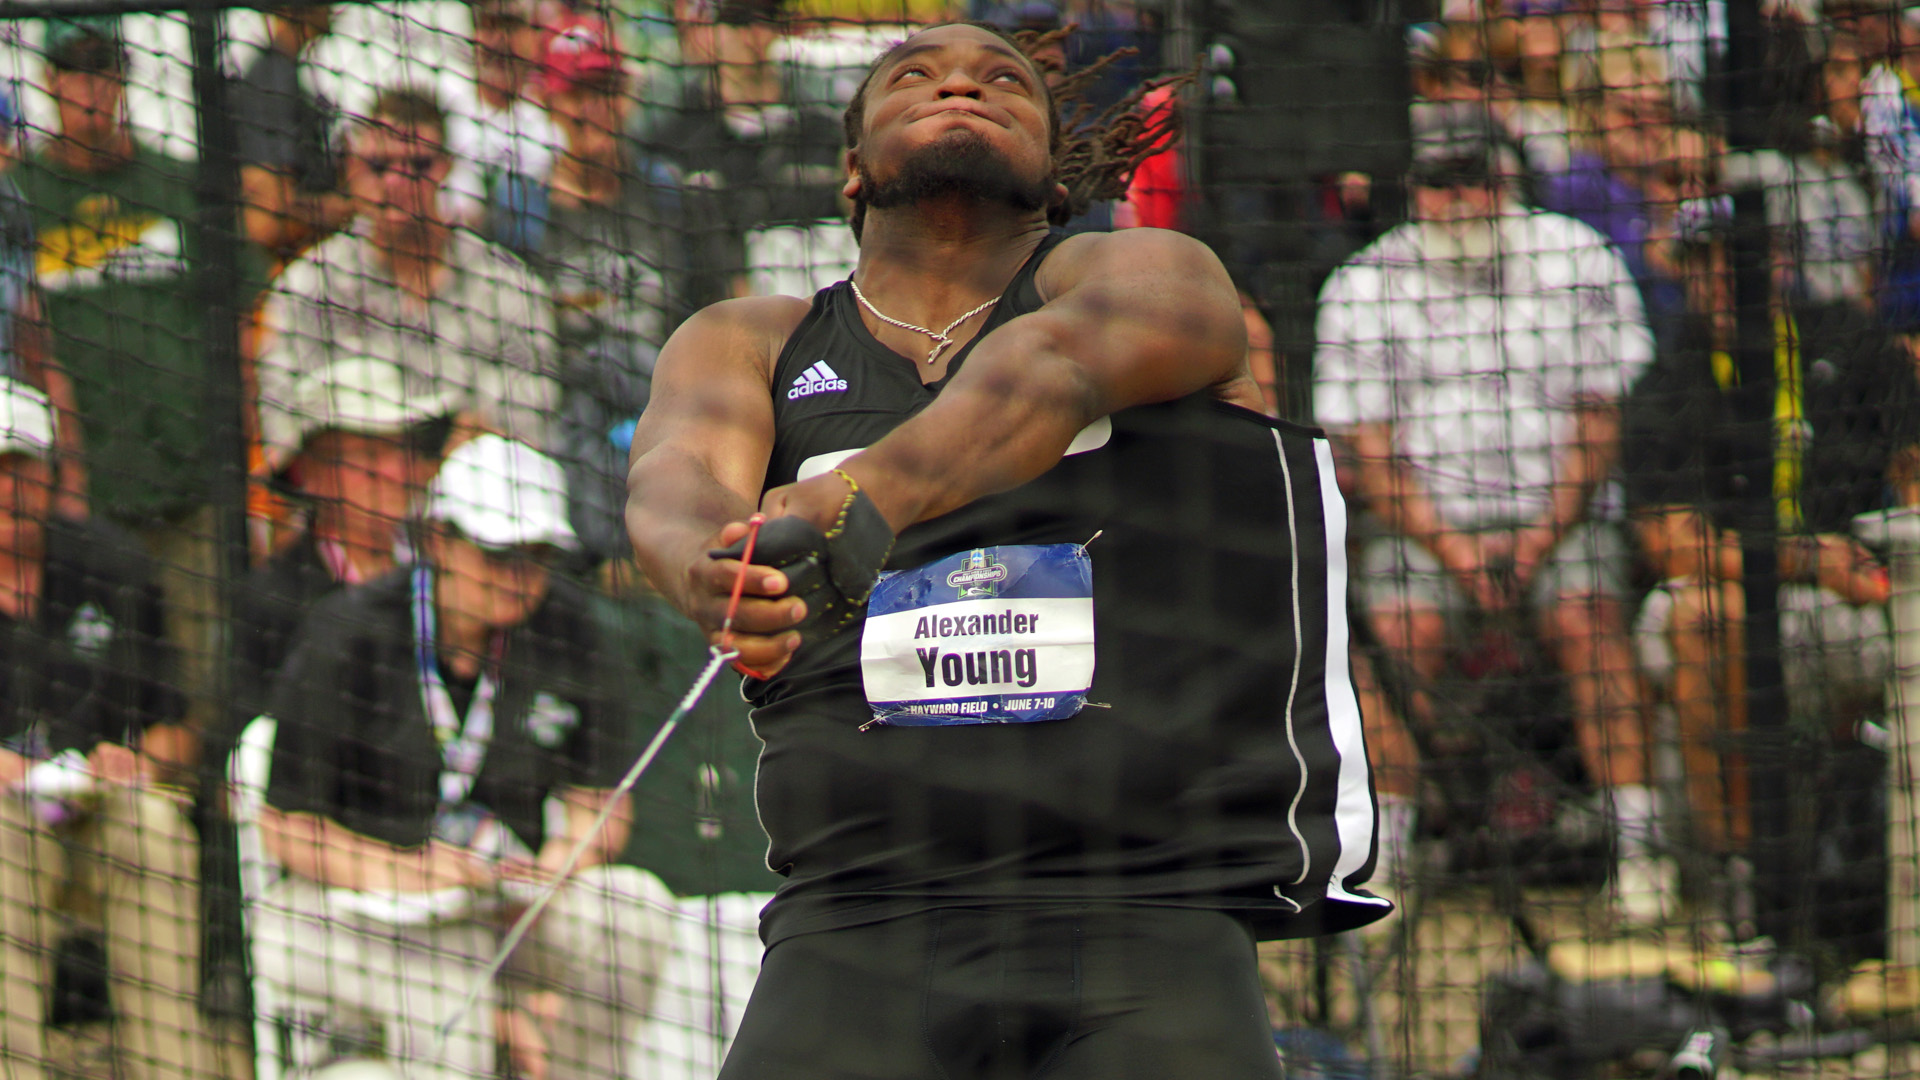 Alex Young, hammer throw